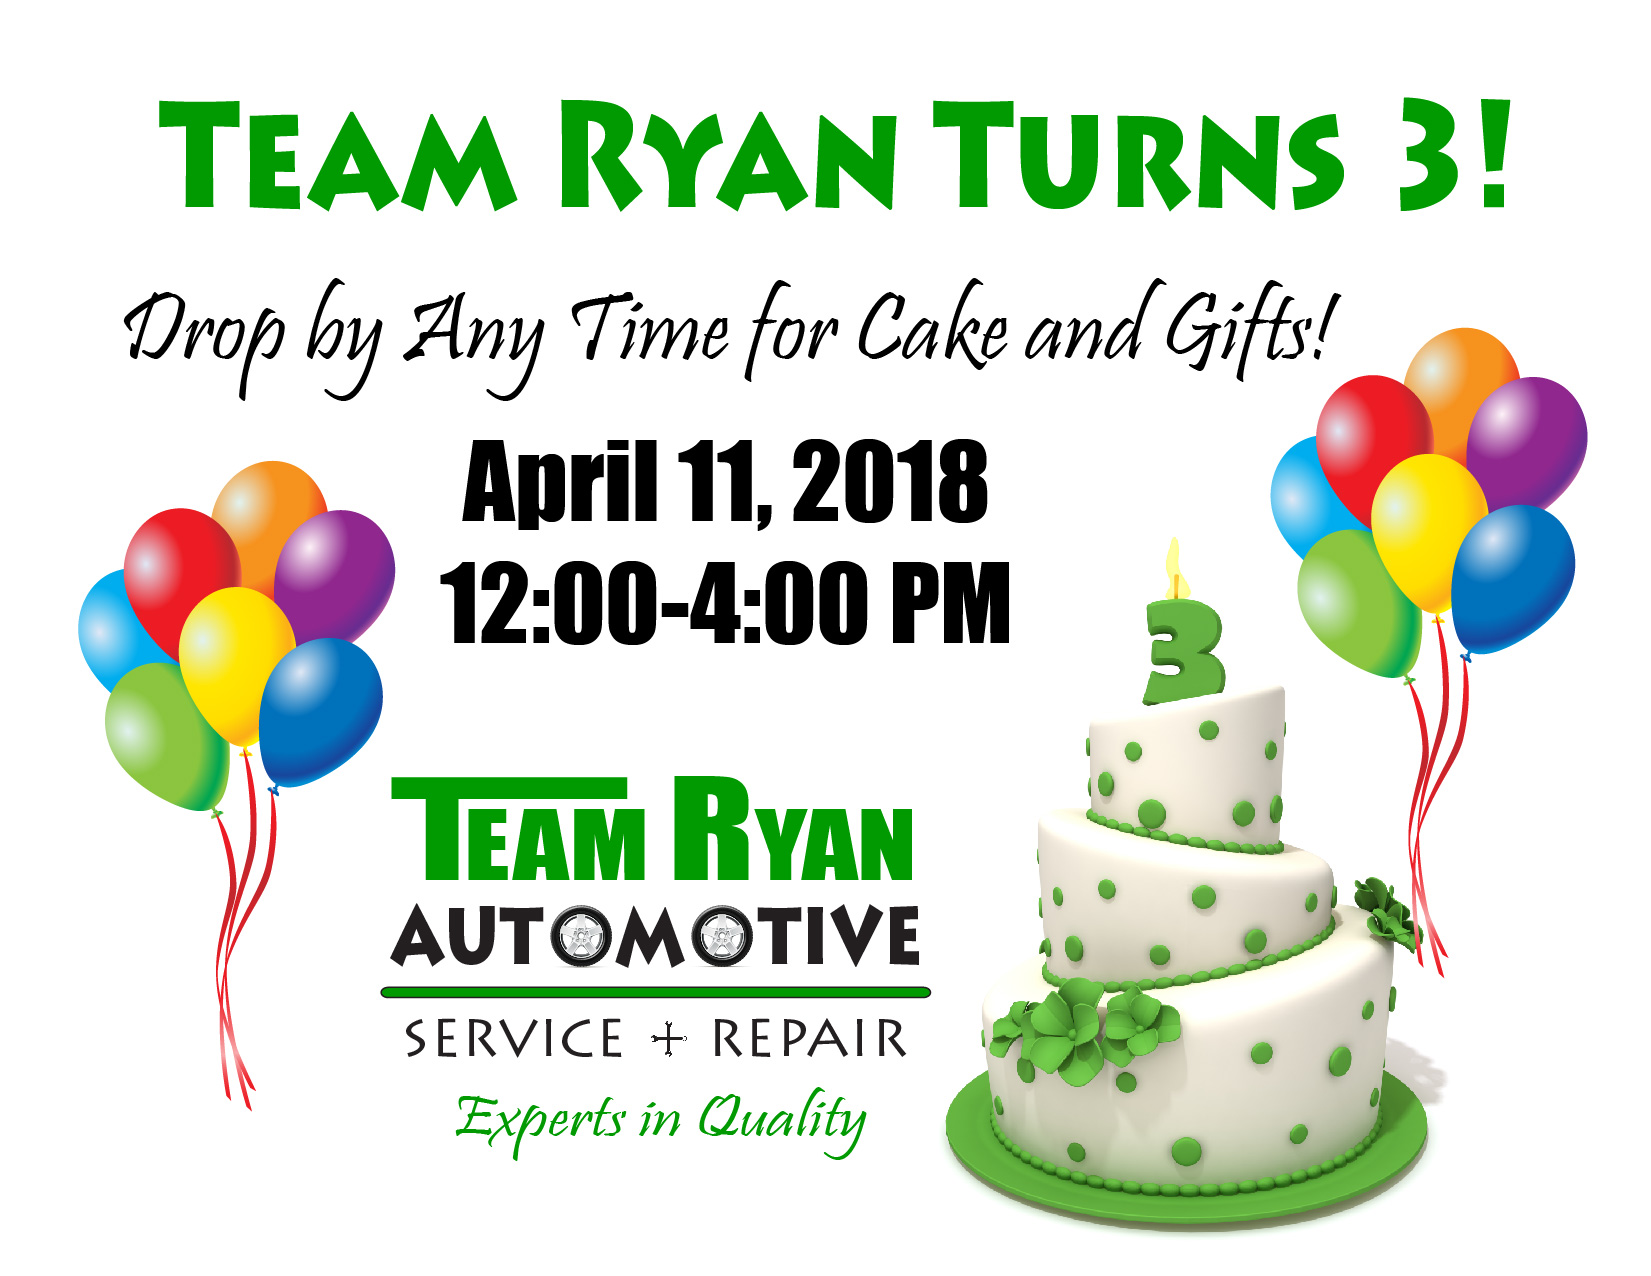 Team Ryan Automotive Turns 3 - Best Auto Repair in Buford.jpg